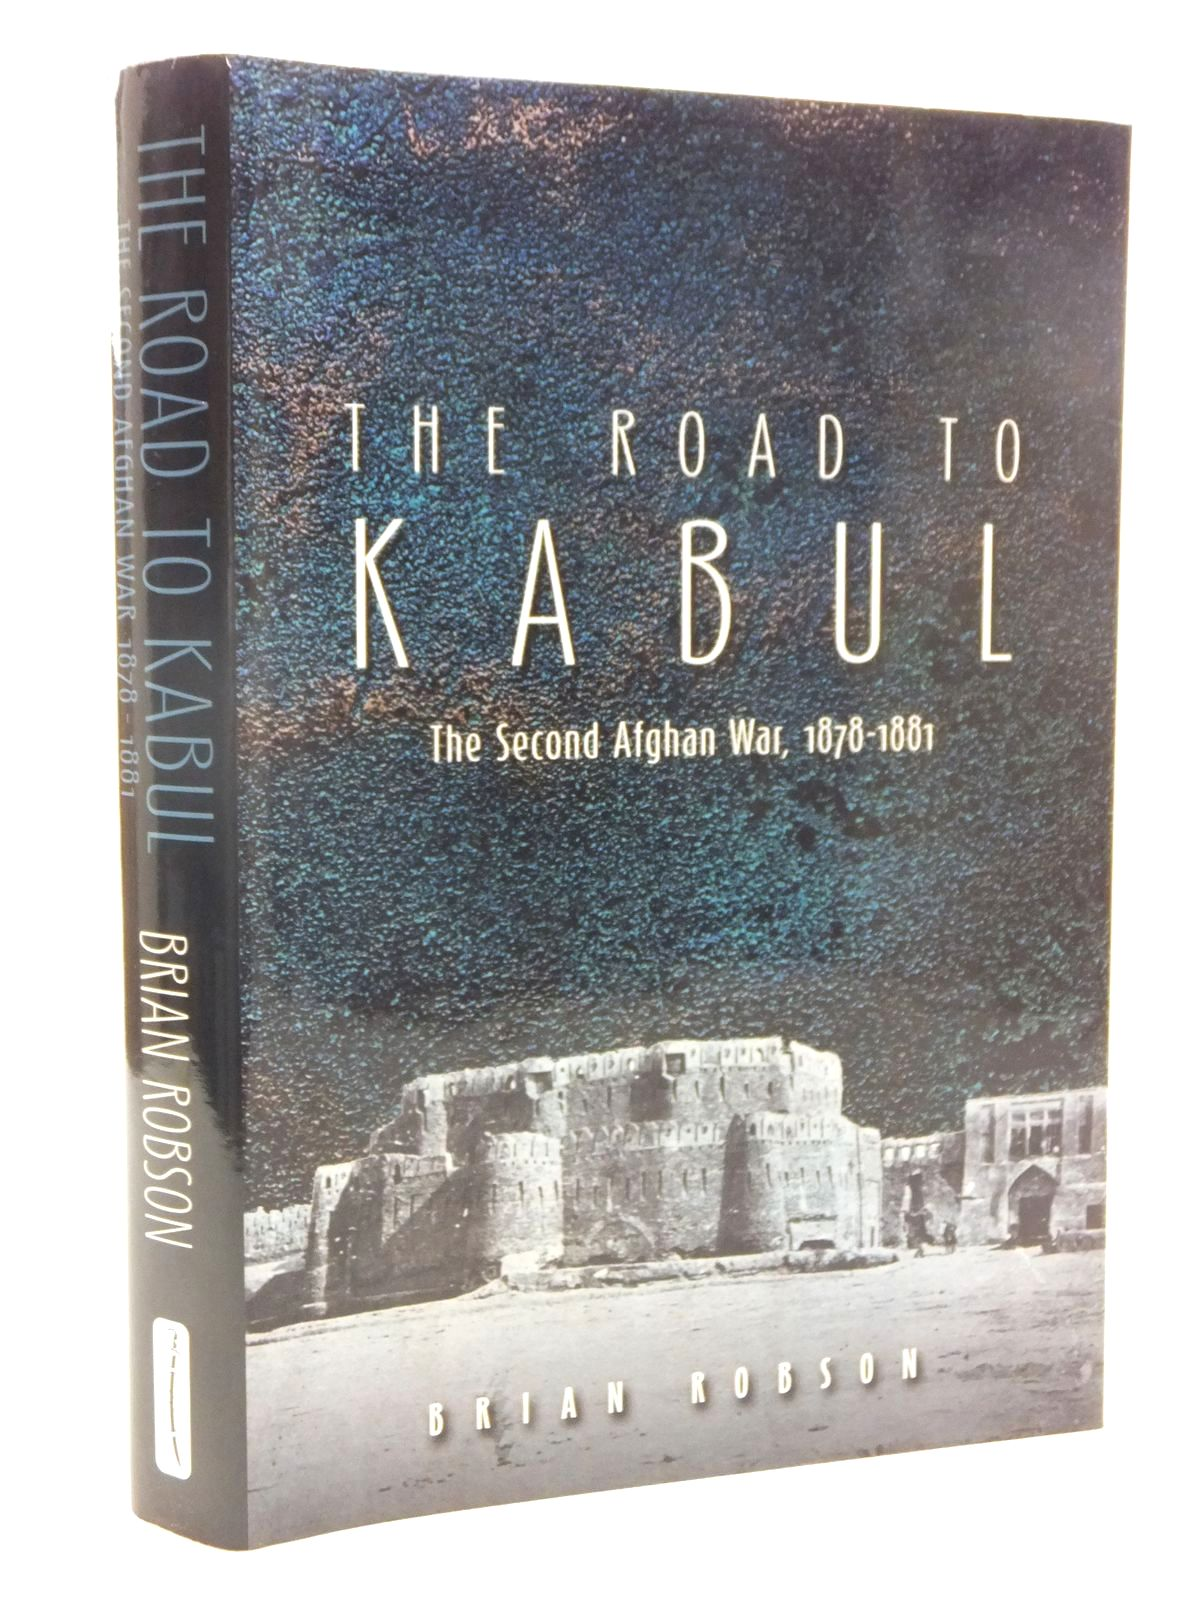 Photo of THE ROAD TO KABUL: THE SECOND AFGHAN WAR 1878-1881 written by Robson, Brian published by Spellmount Ltd. (STOCK CODE: 1609941)  for sale by Stella & Rose's Books